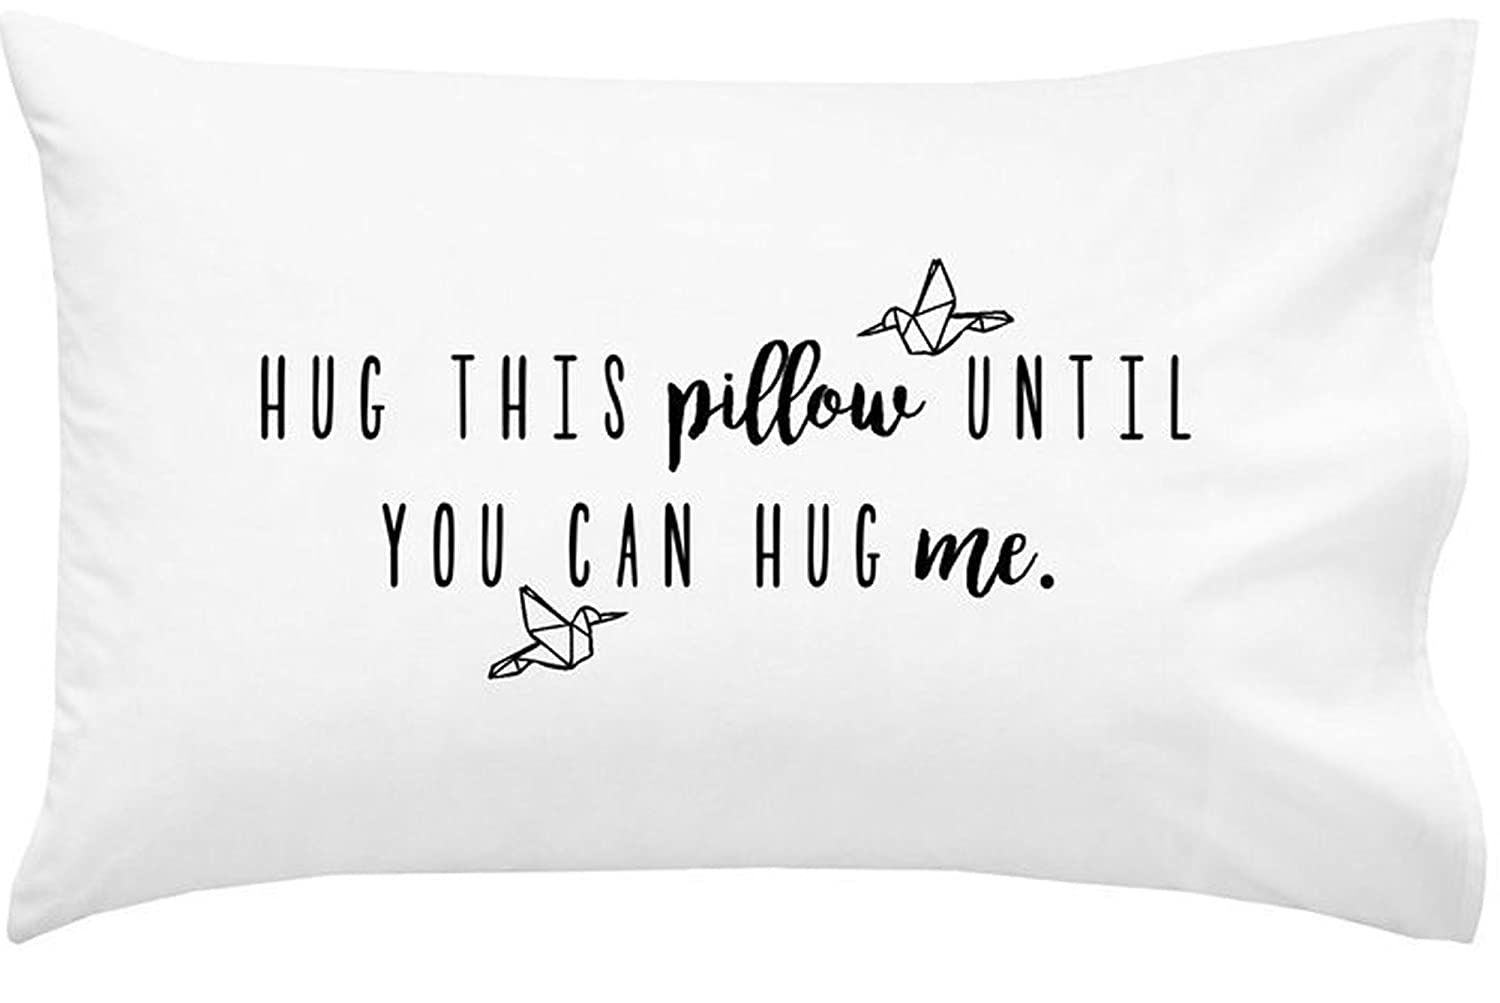 Oh, Susannah Hug This Pillow Until You Can Hug Me - LDR Pillow Case 20x30 Standard/Queen Size Pillowcase P-315HP